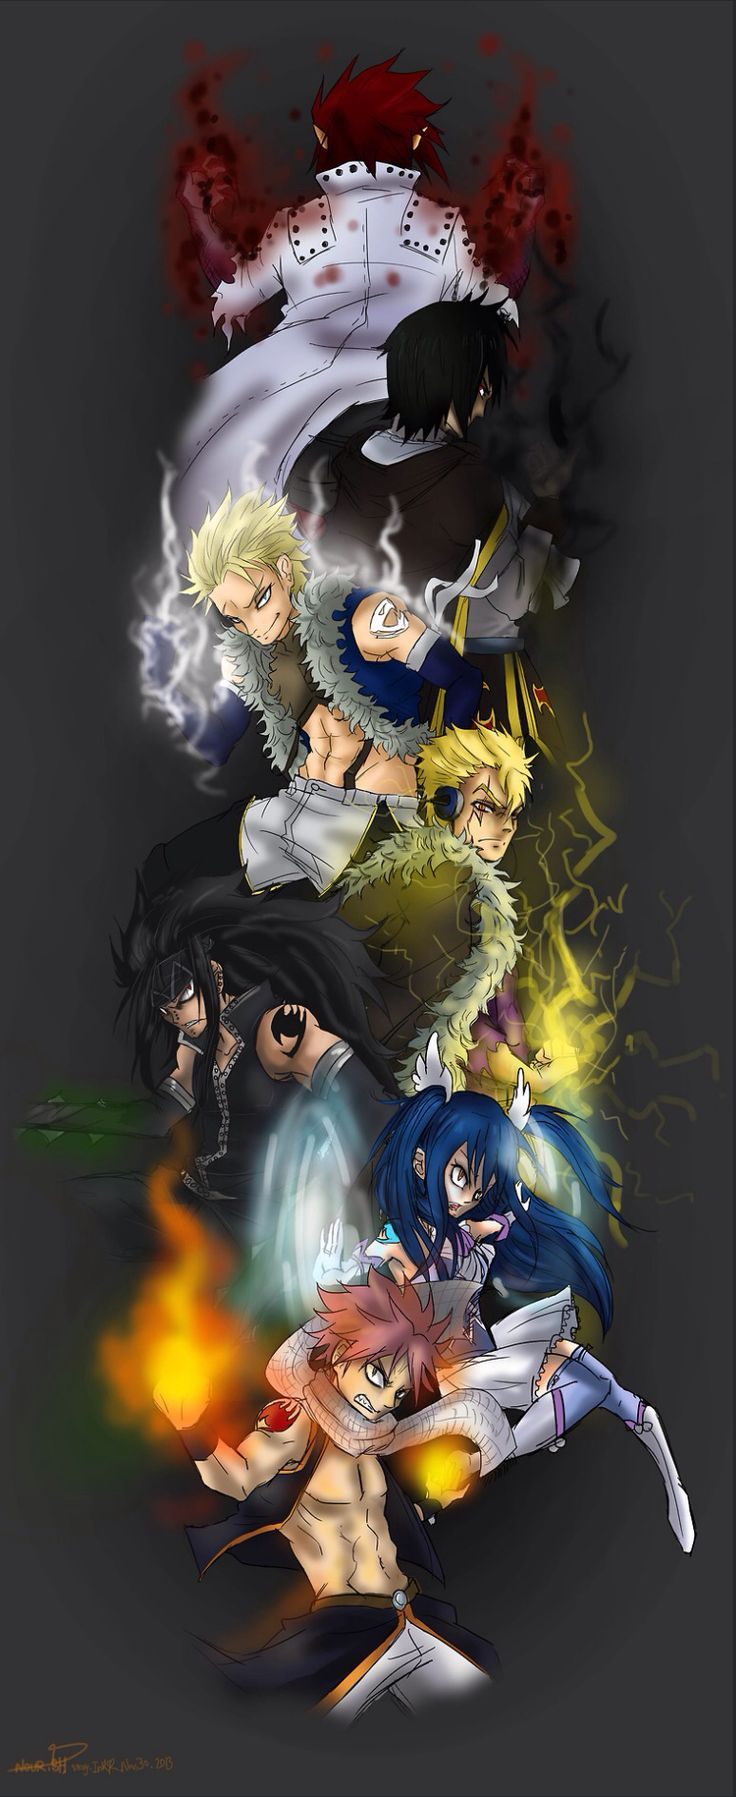 Dragon slayers!!!!!!!!!- no offence to who ever drew this but stings face looks a little... Off?